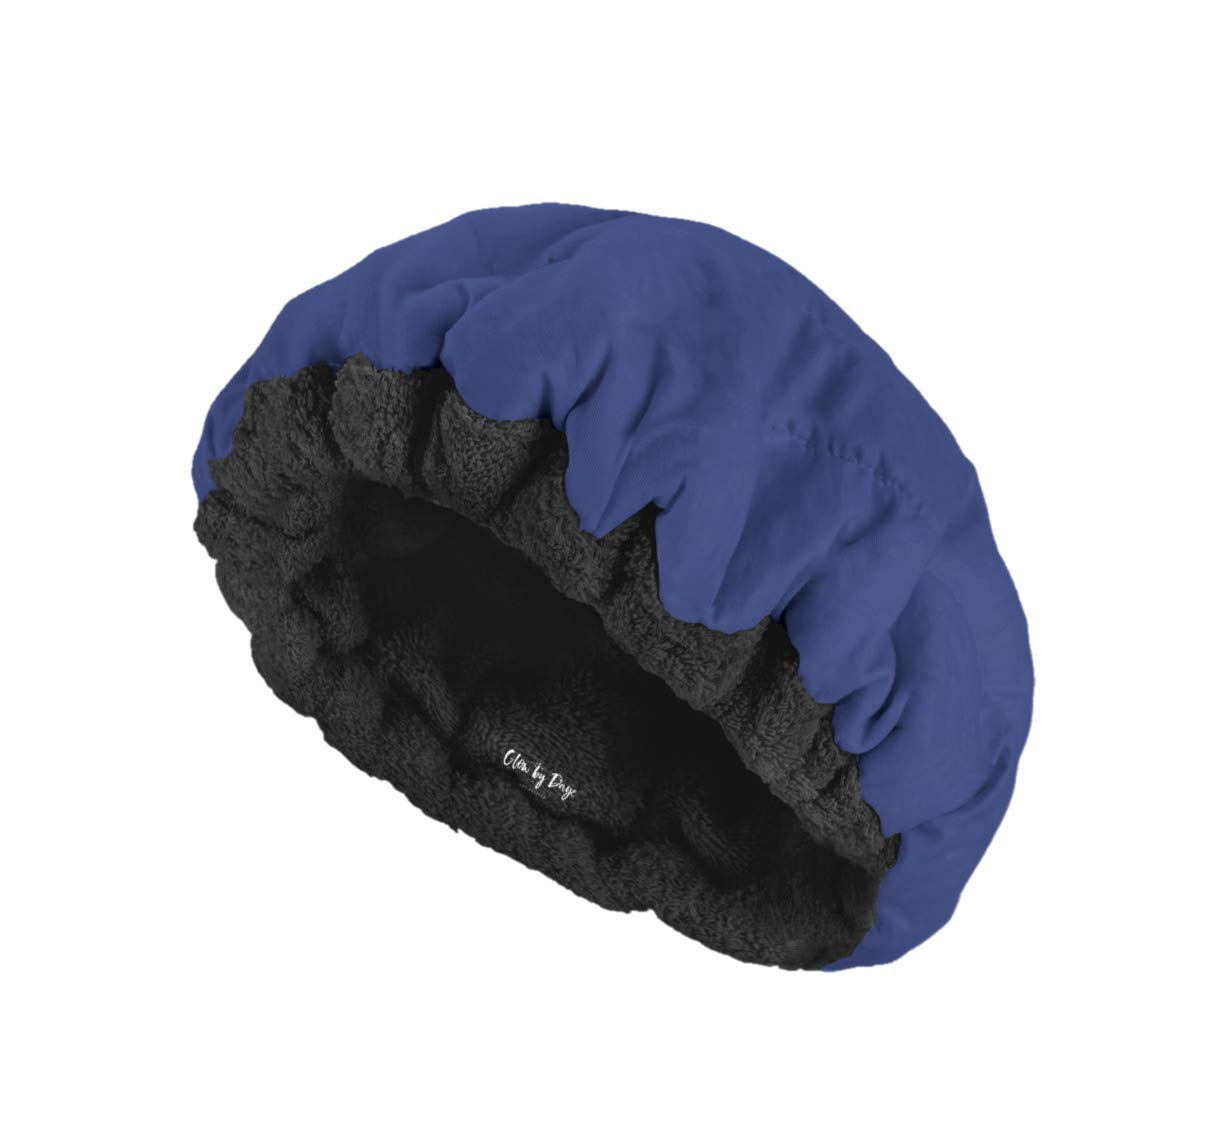 Deep Conditioning Thermal Heat Cap- Cordless, Microwavable Heat Cap for Steaming, Heat Therapy for Hair, Portable, Reversible by Glow by Daye (Navy/Black)